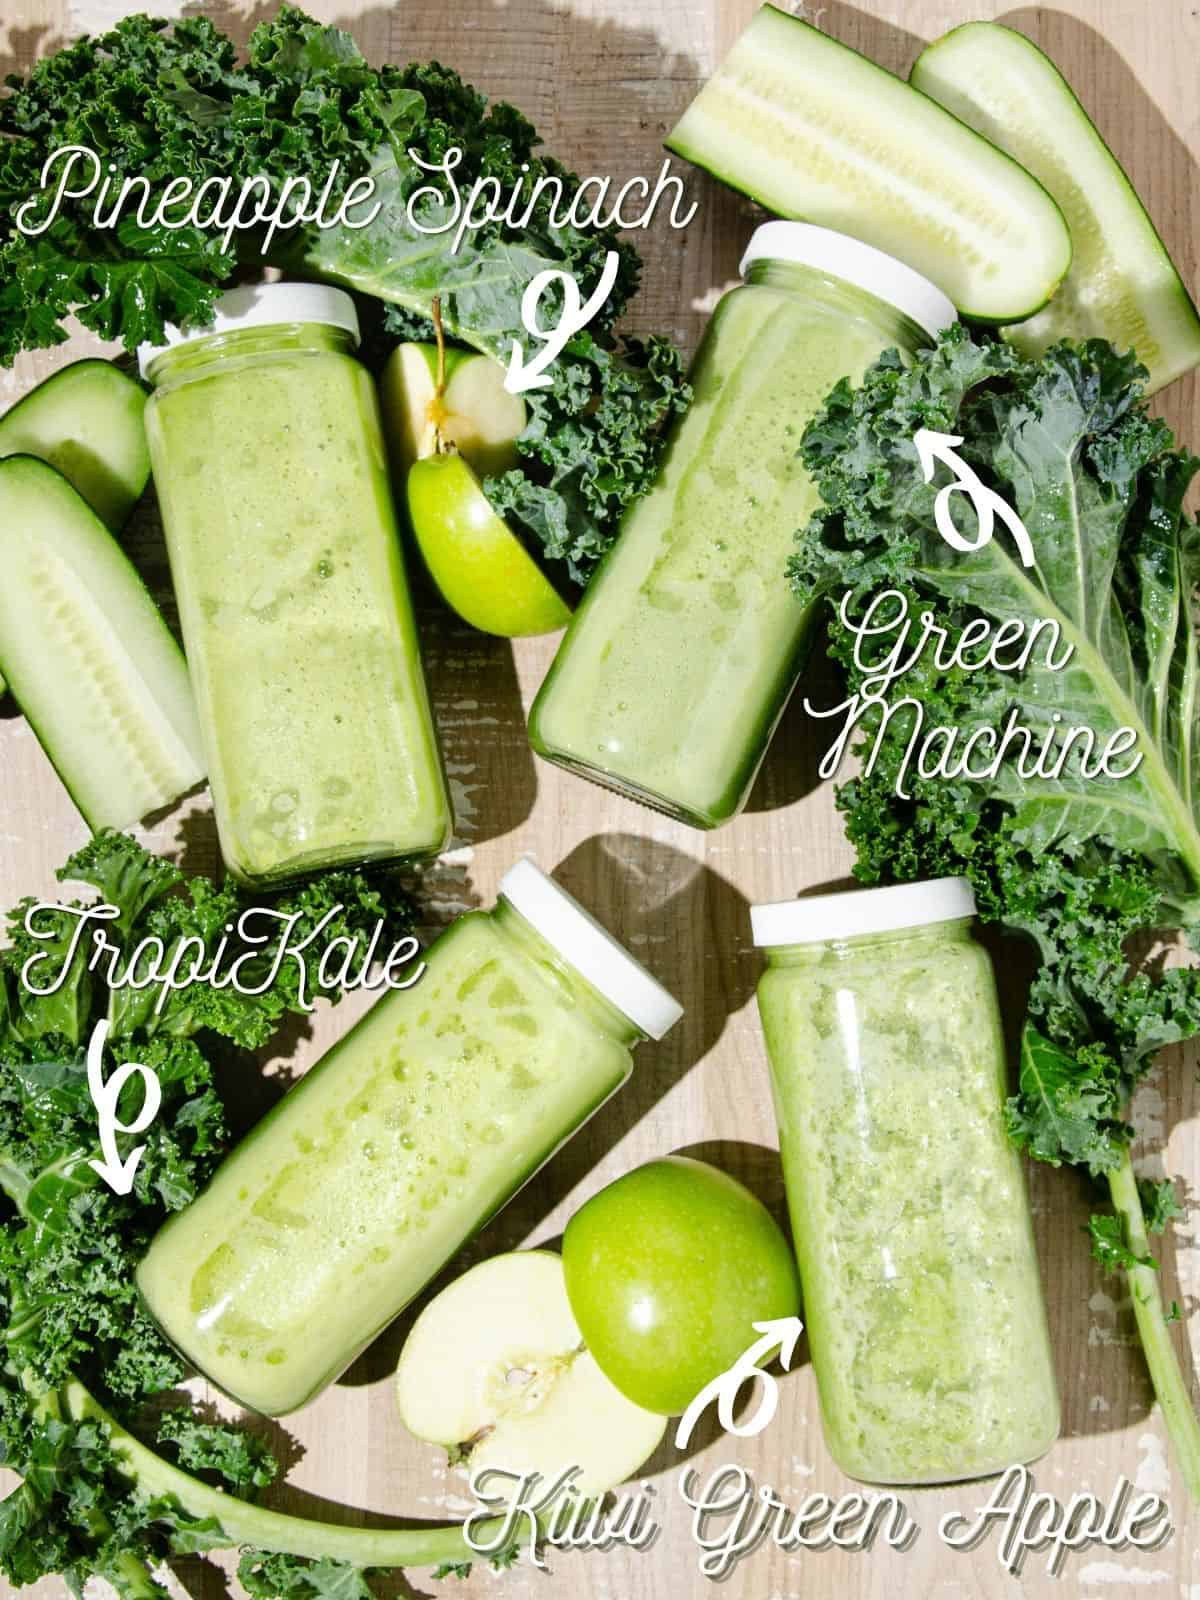 Four Glass bottles of green juice surrounded by chopped kale, green apples and cucumbers. Each bottle is labeled with the corresponding green juice name.